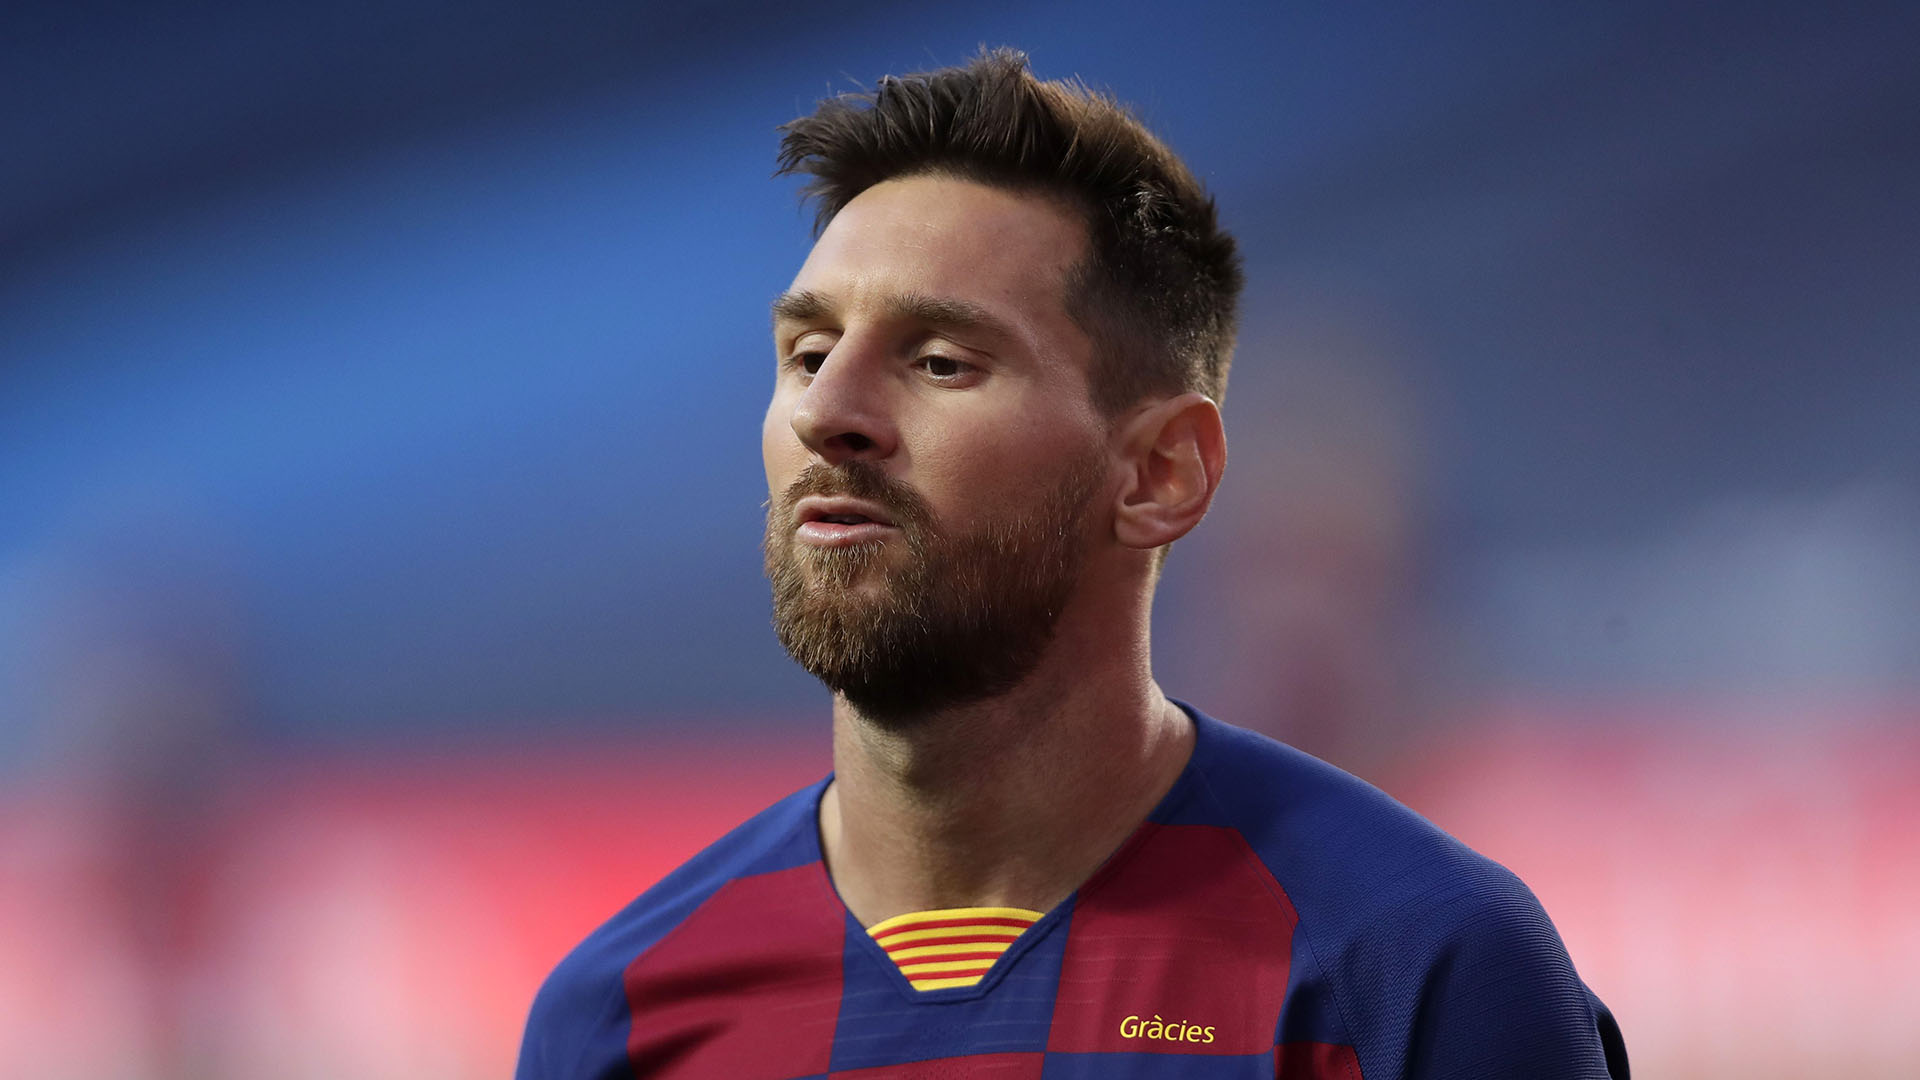 Messi breaks silence on Barcelona exit saga: 'The president did not keep his word' 1